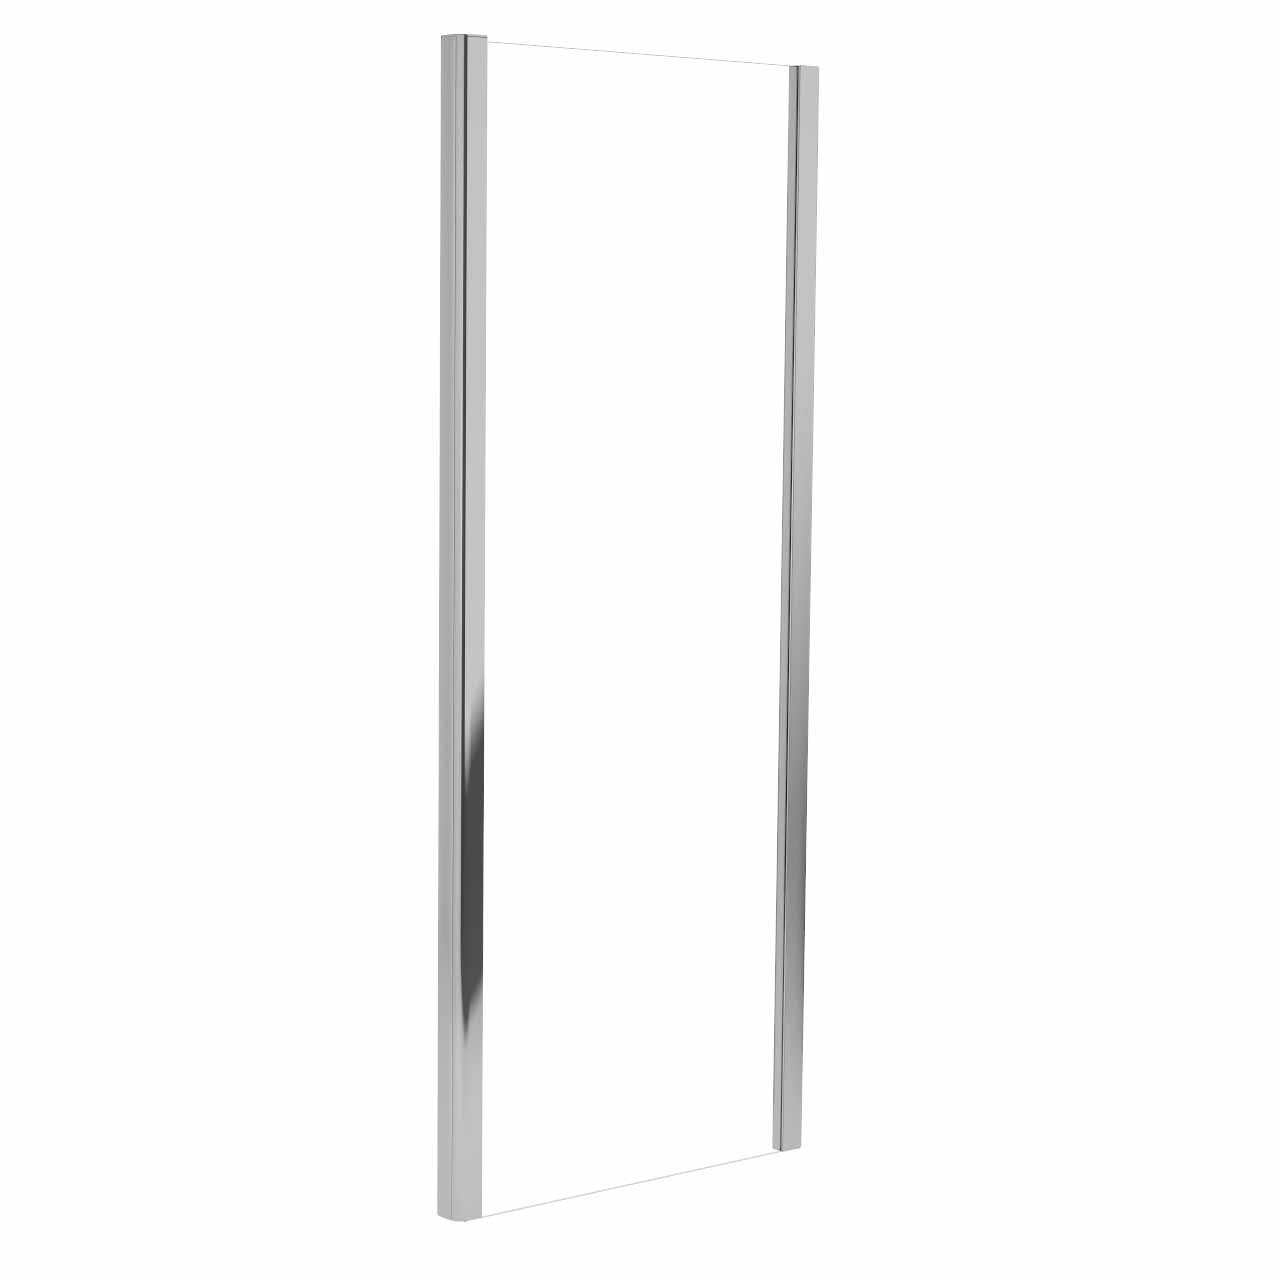 Series 8 Plus 1000 x 760 Hinged Door Enclosure